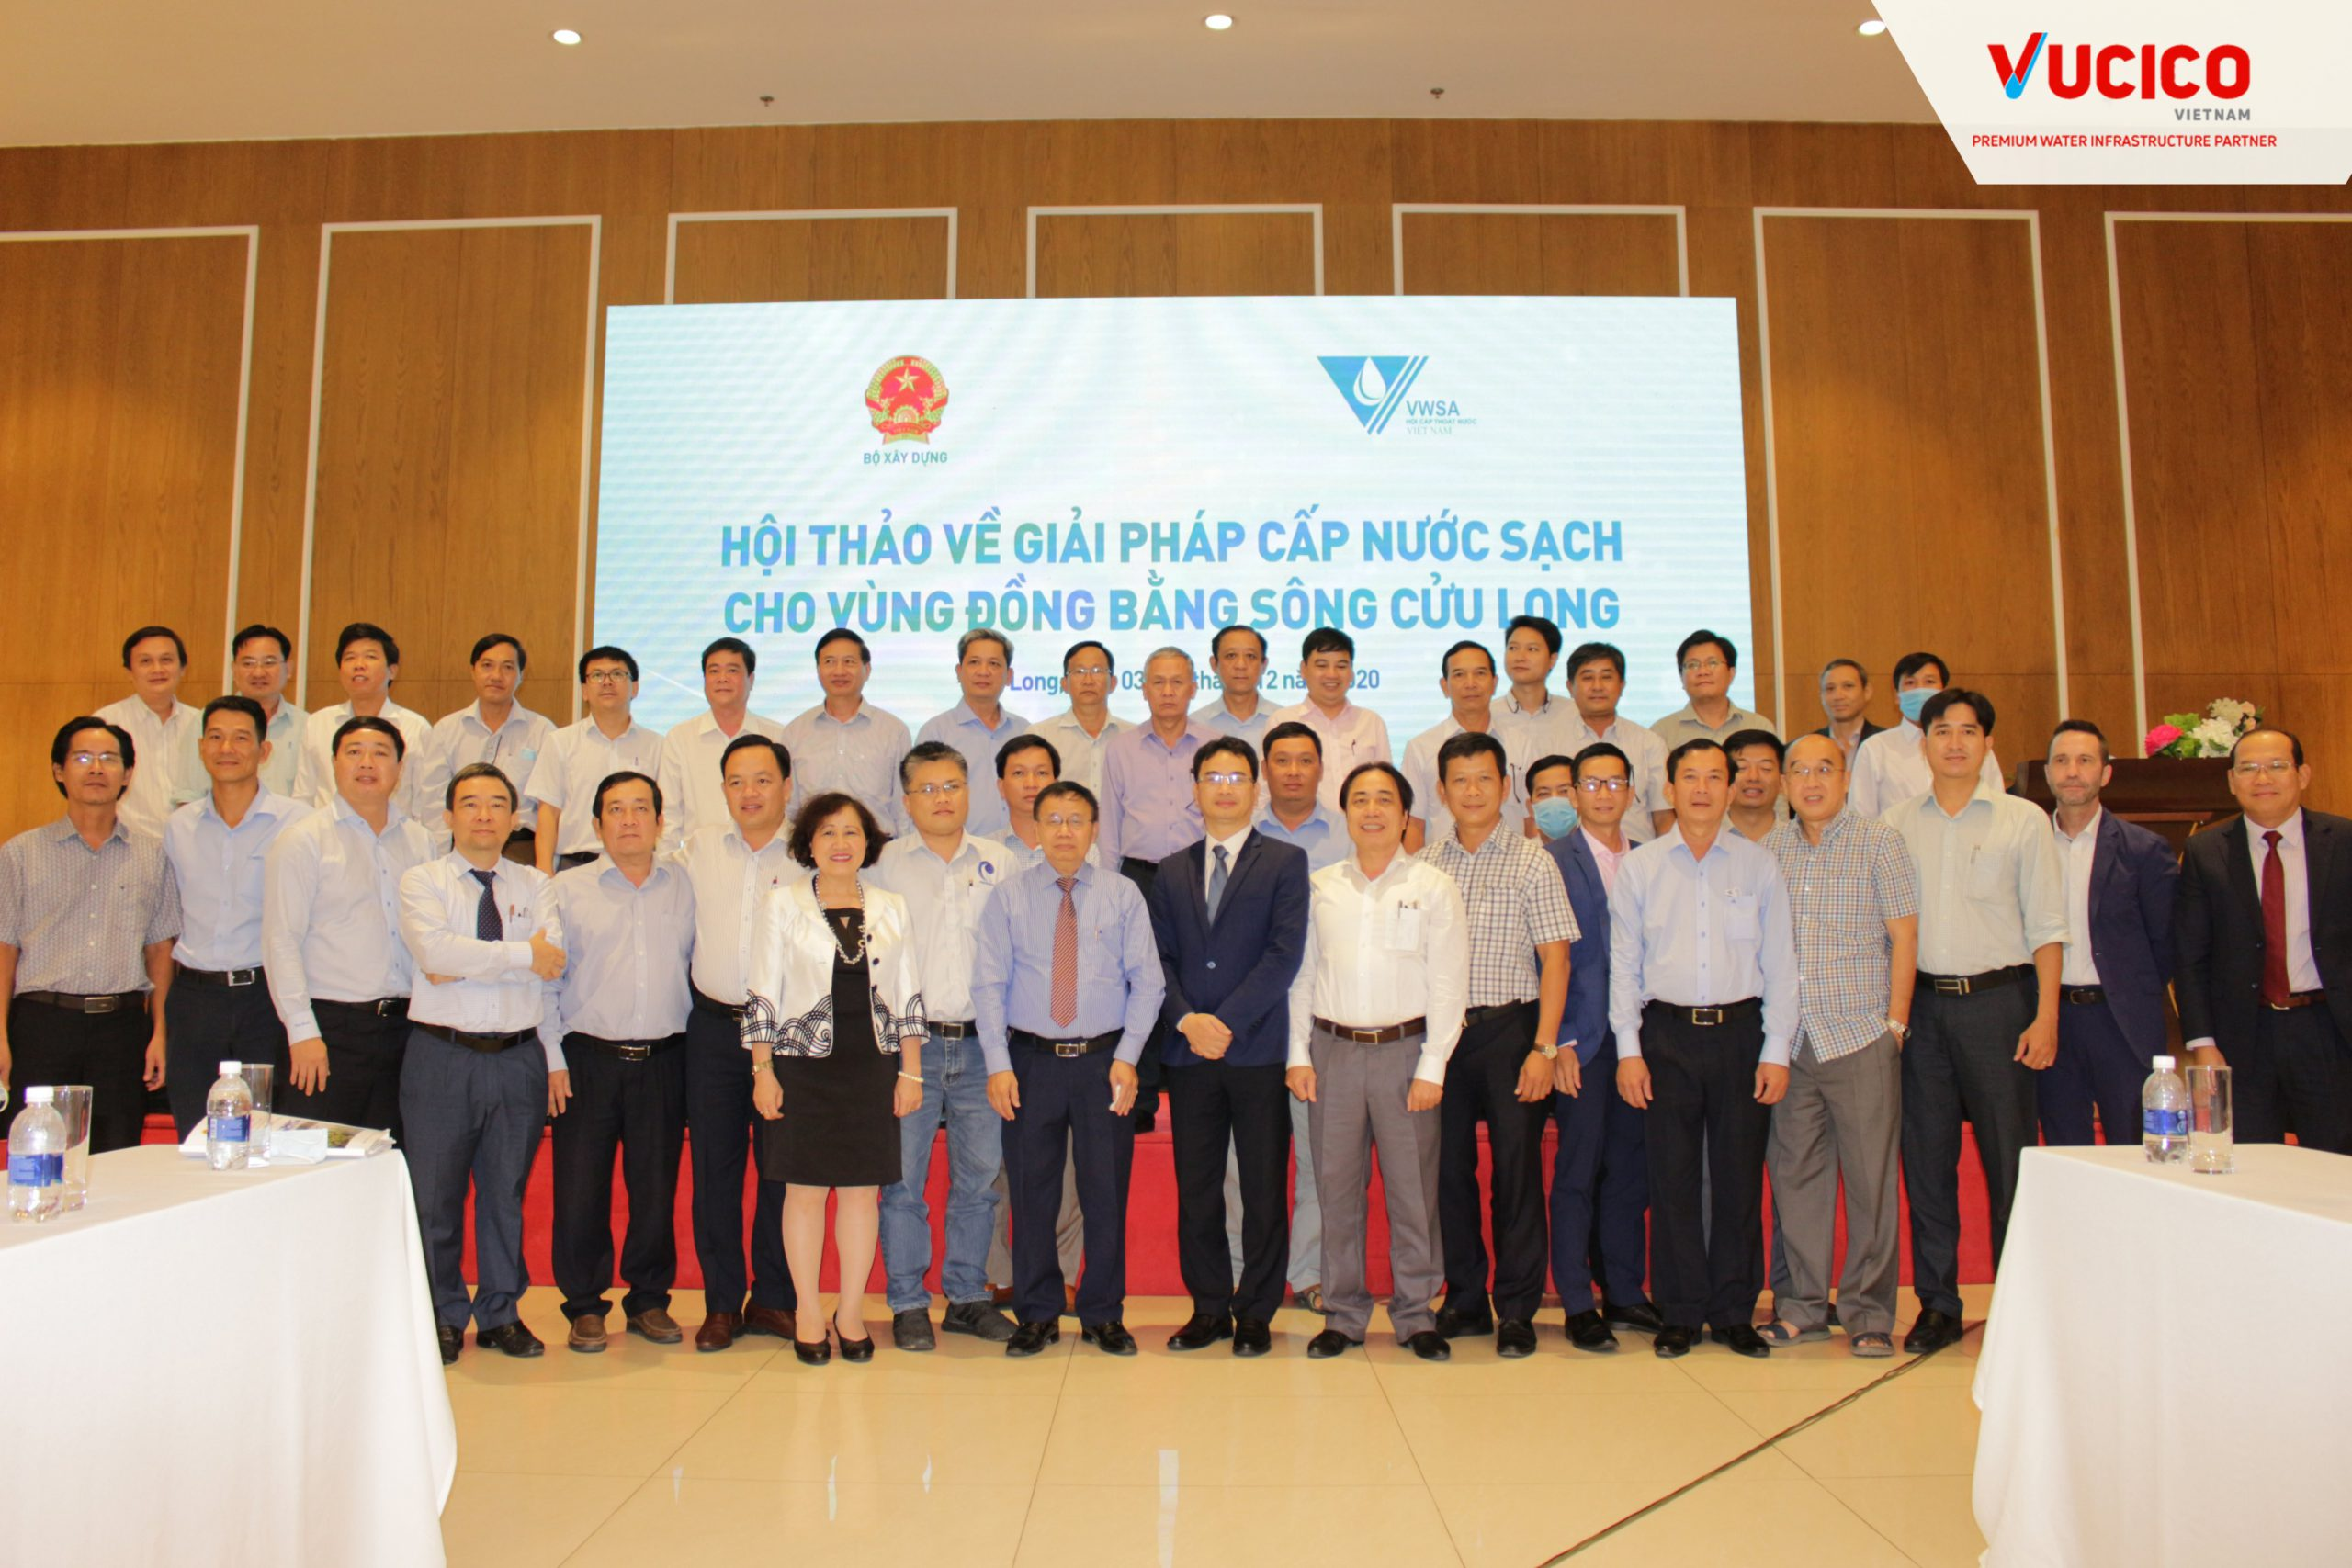 CONFERENCE ON SOLUTIONS TO SUPPLY CLEAN WATER FOR THE MEKONG DELTA